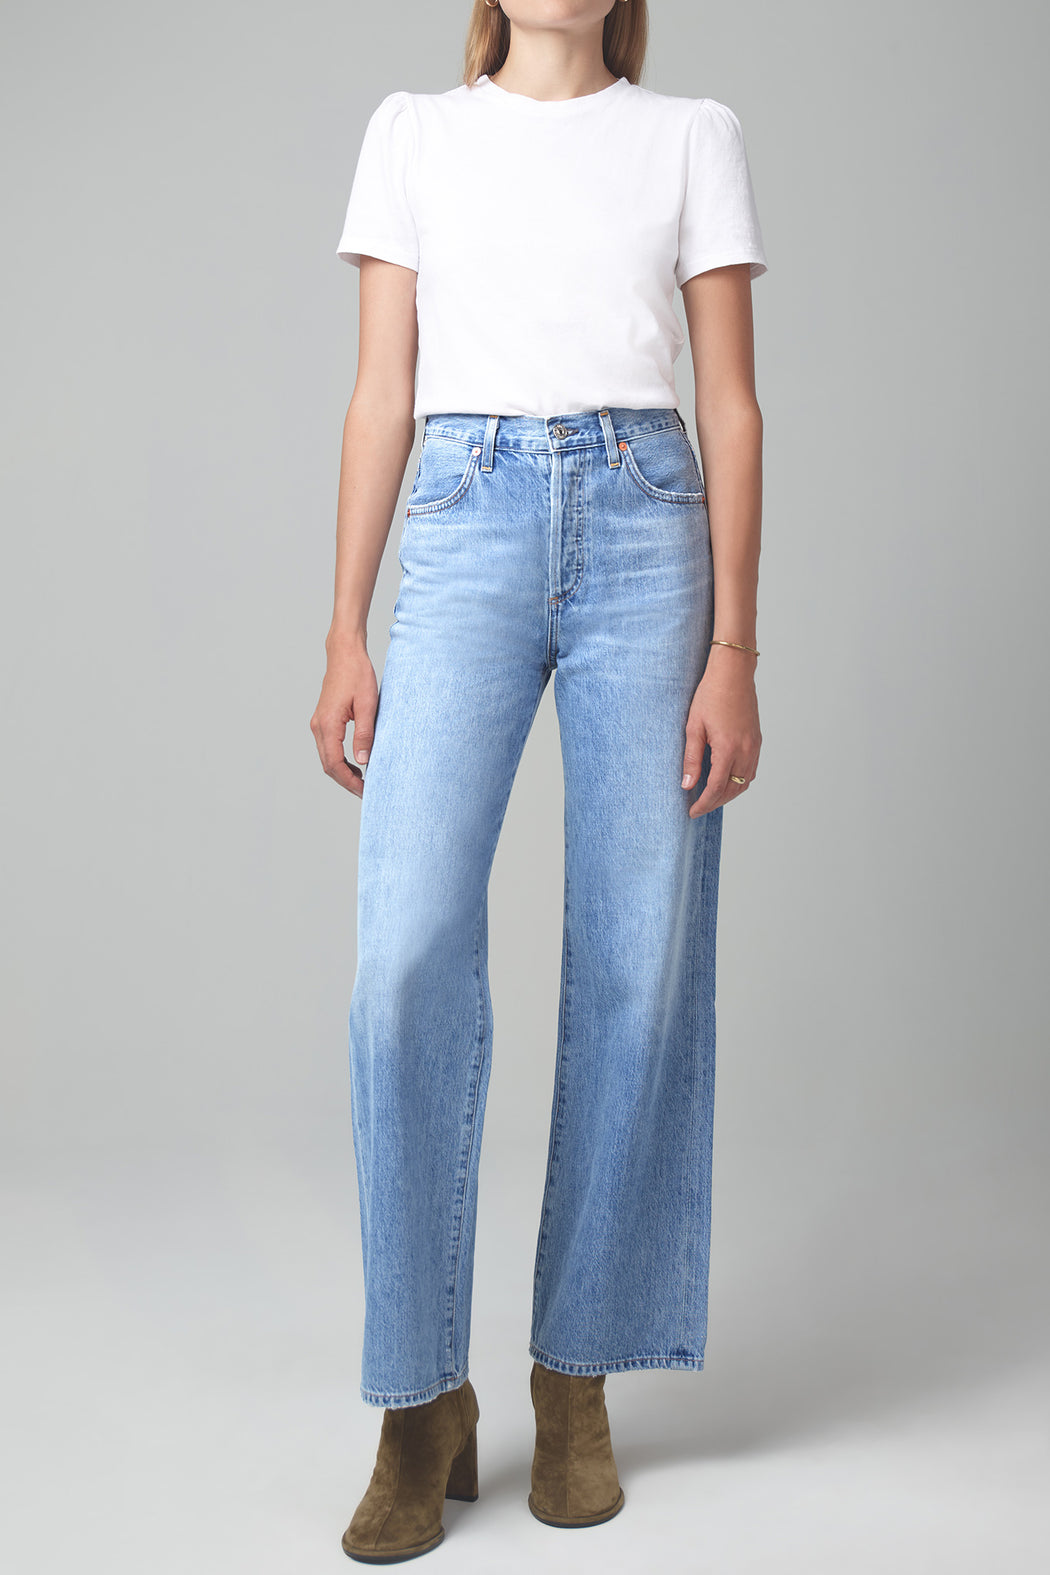 Citizens-of-Humanity-Flavie-Trouser-Jean-Tularosa